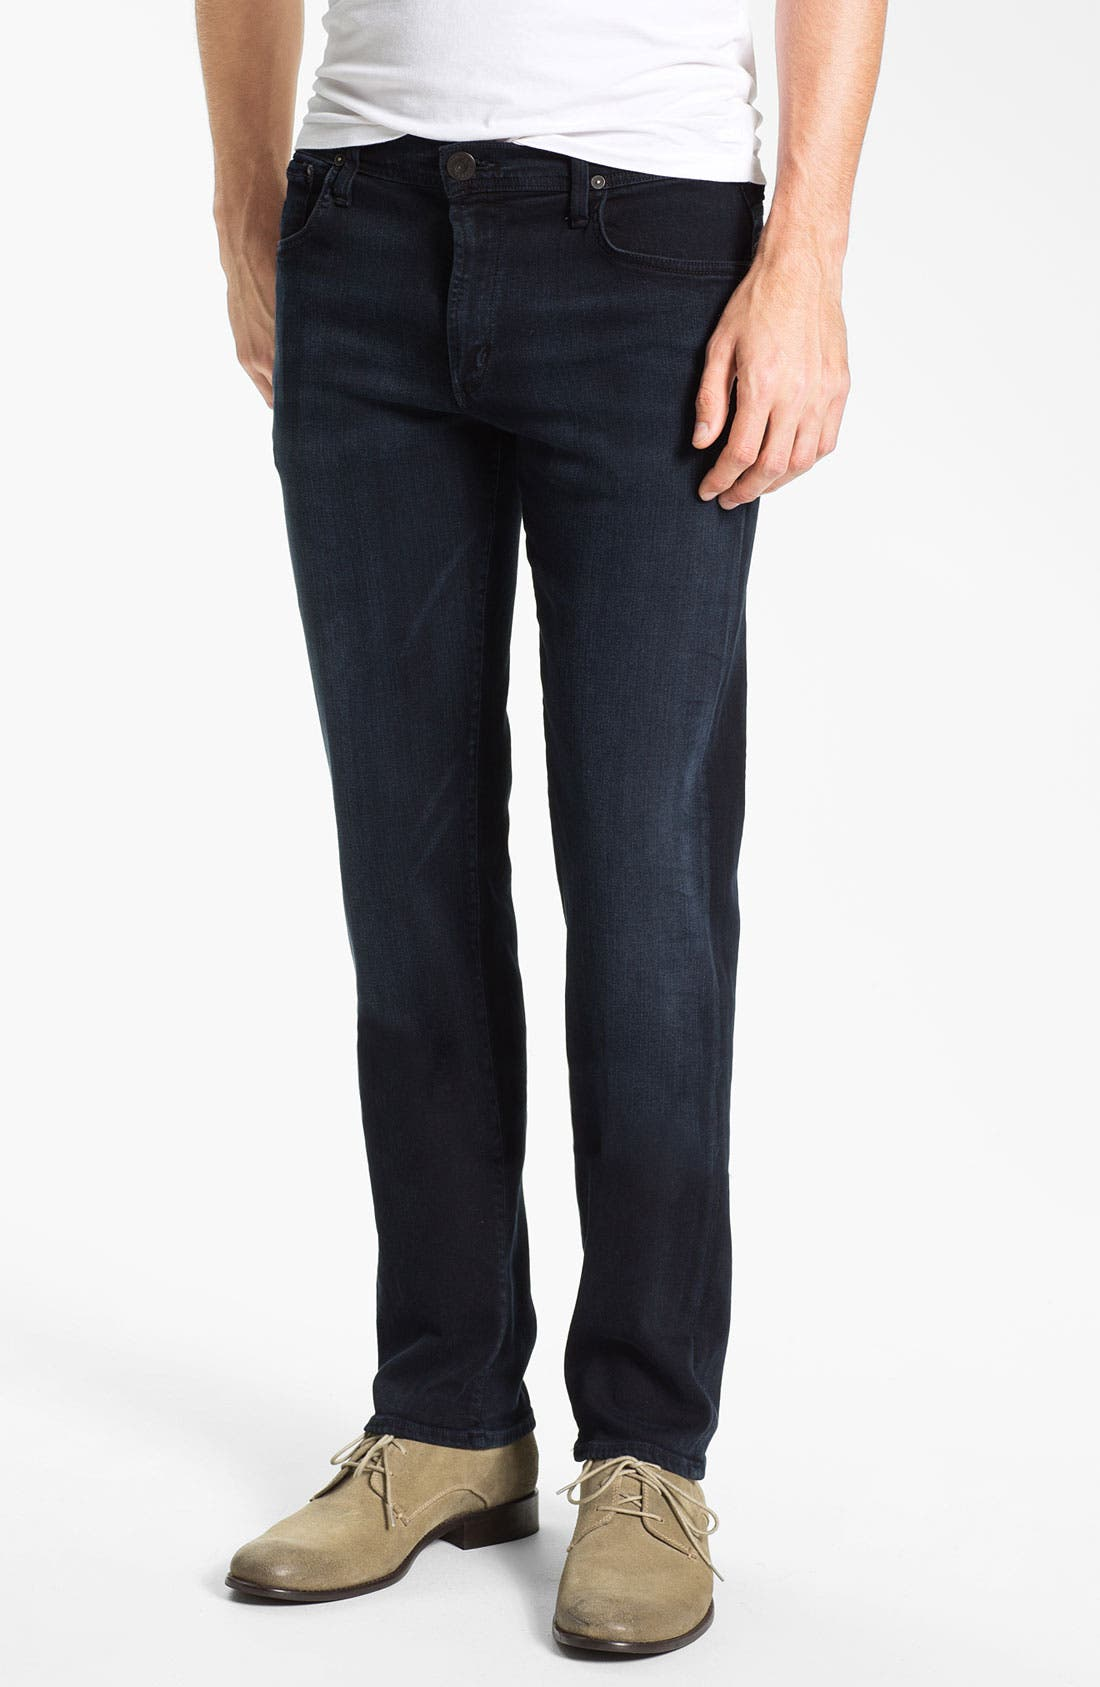 Main Image - Citizens of Humanity 'Adonis' Comfort Slim Fit Jeans (Walker Blue)